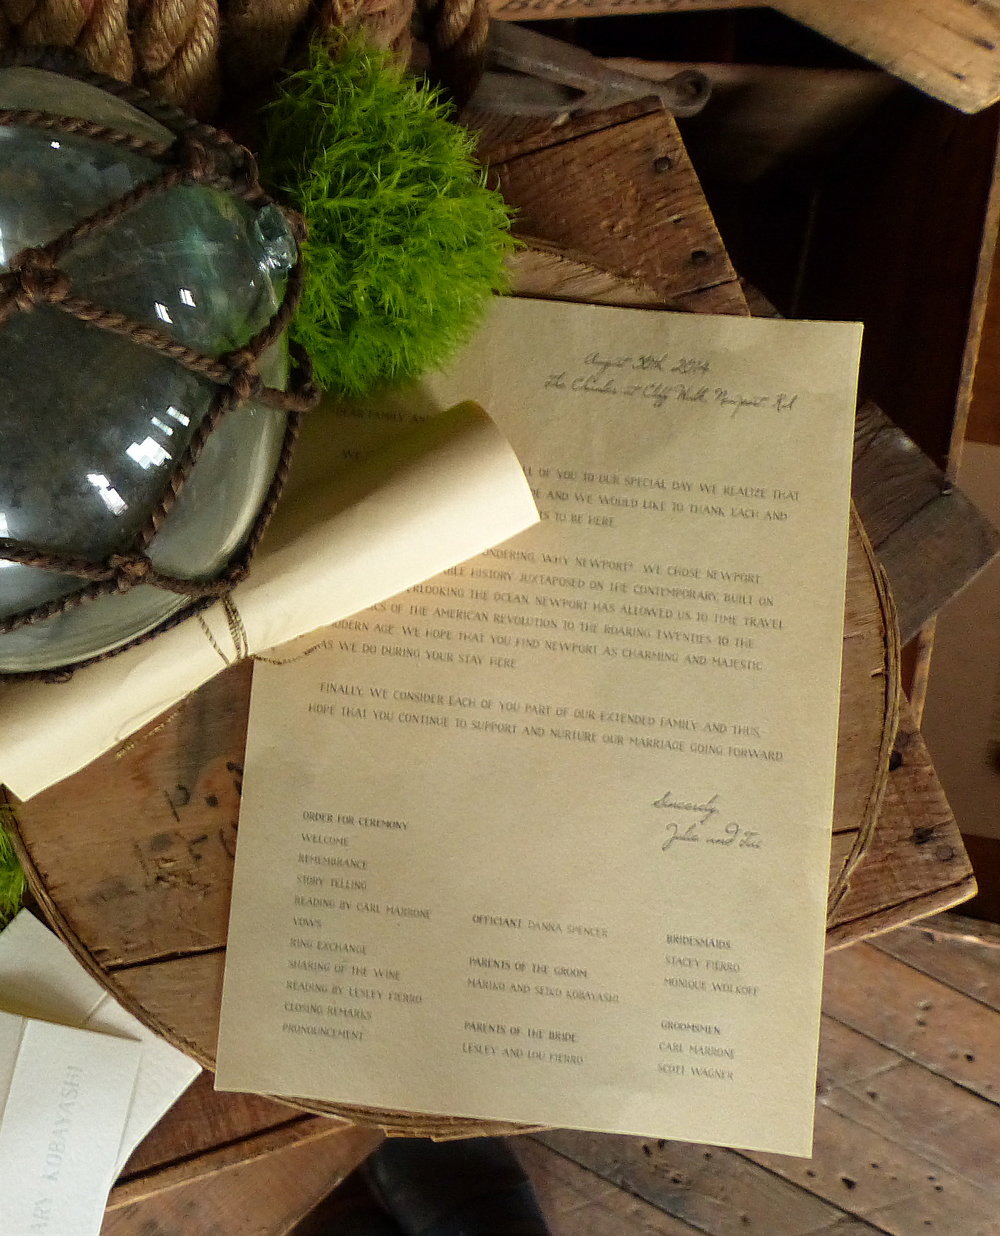 For the very short ceremony program we incorporated a letter from the couple and rolled it into a scroll.